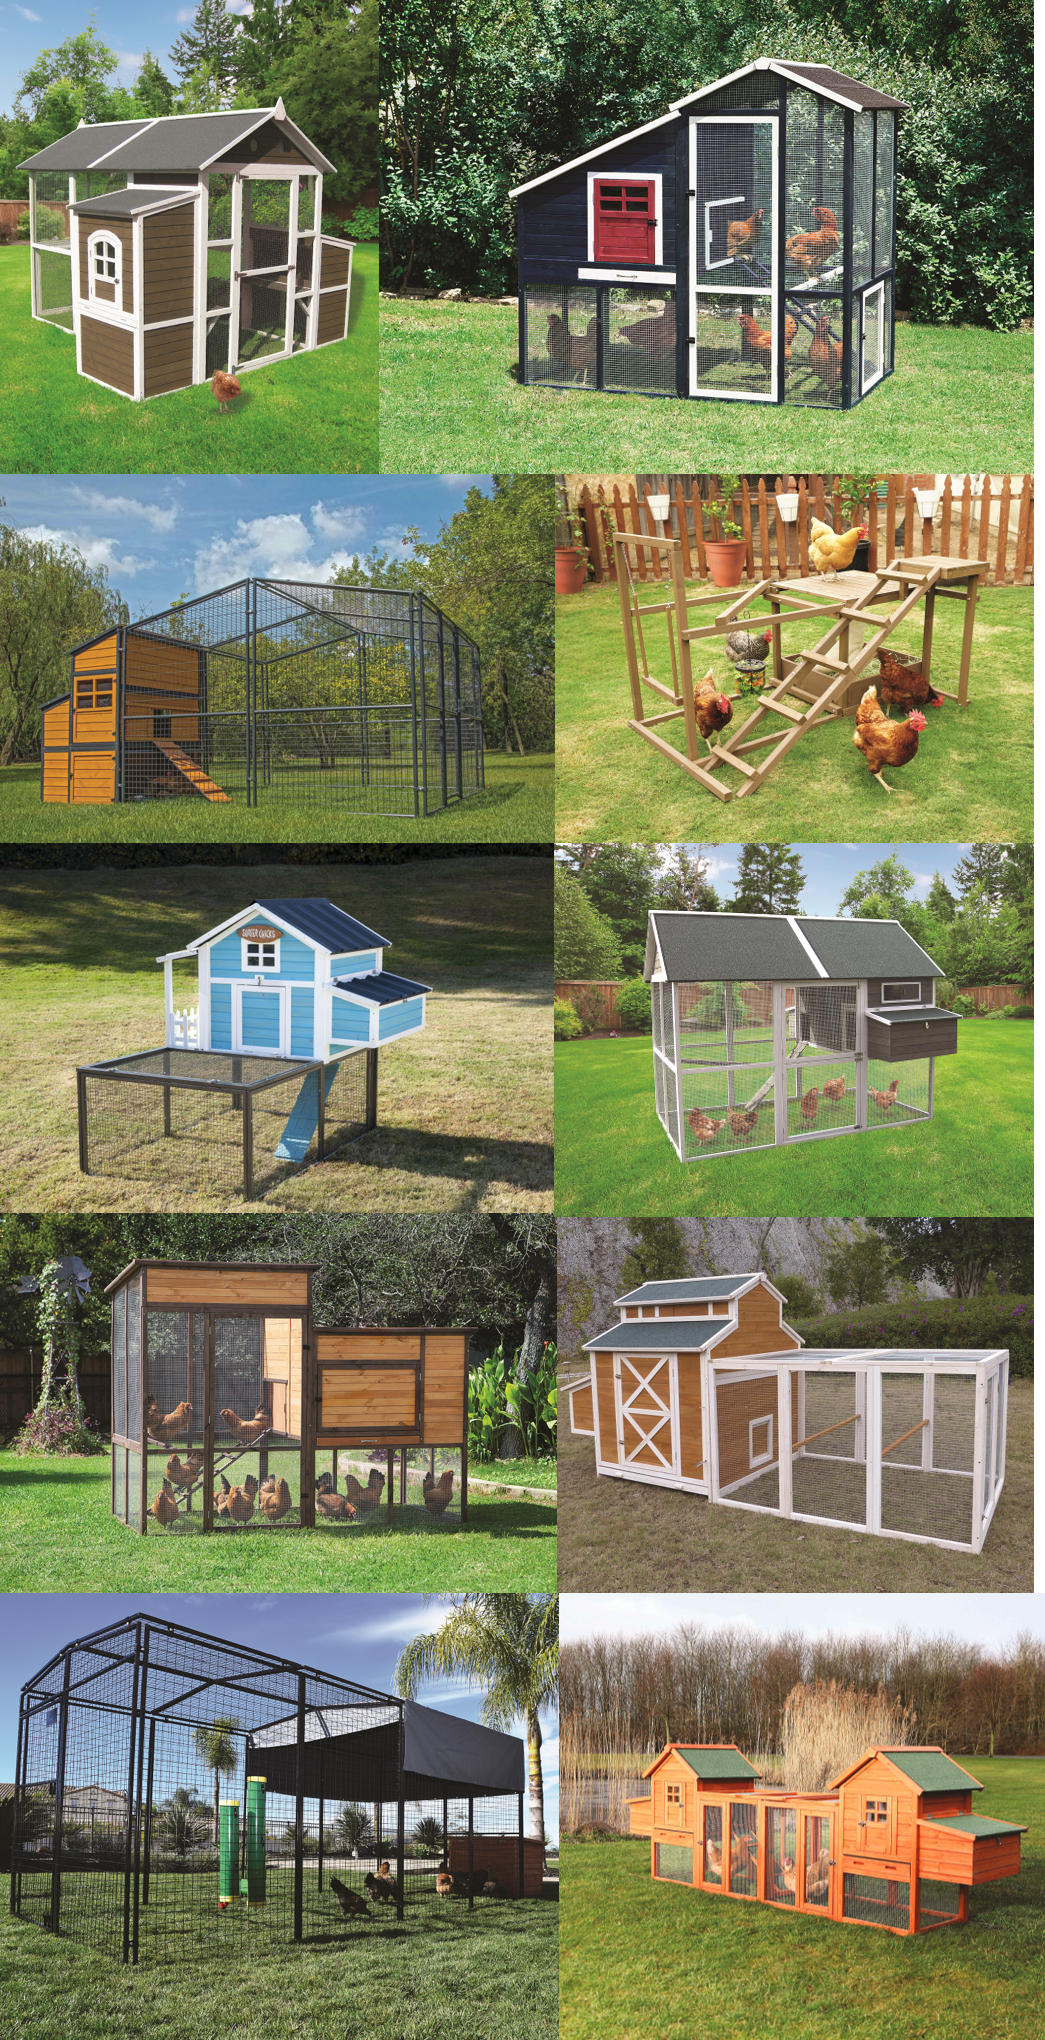 So Many Best Selling Chicken Coops For Your Flocks 49 Flat Rate Shipping Homesteading Sust Chickens Backyard Urban Chicken Farming Backyard Chicken Coops